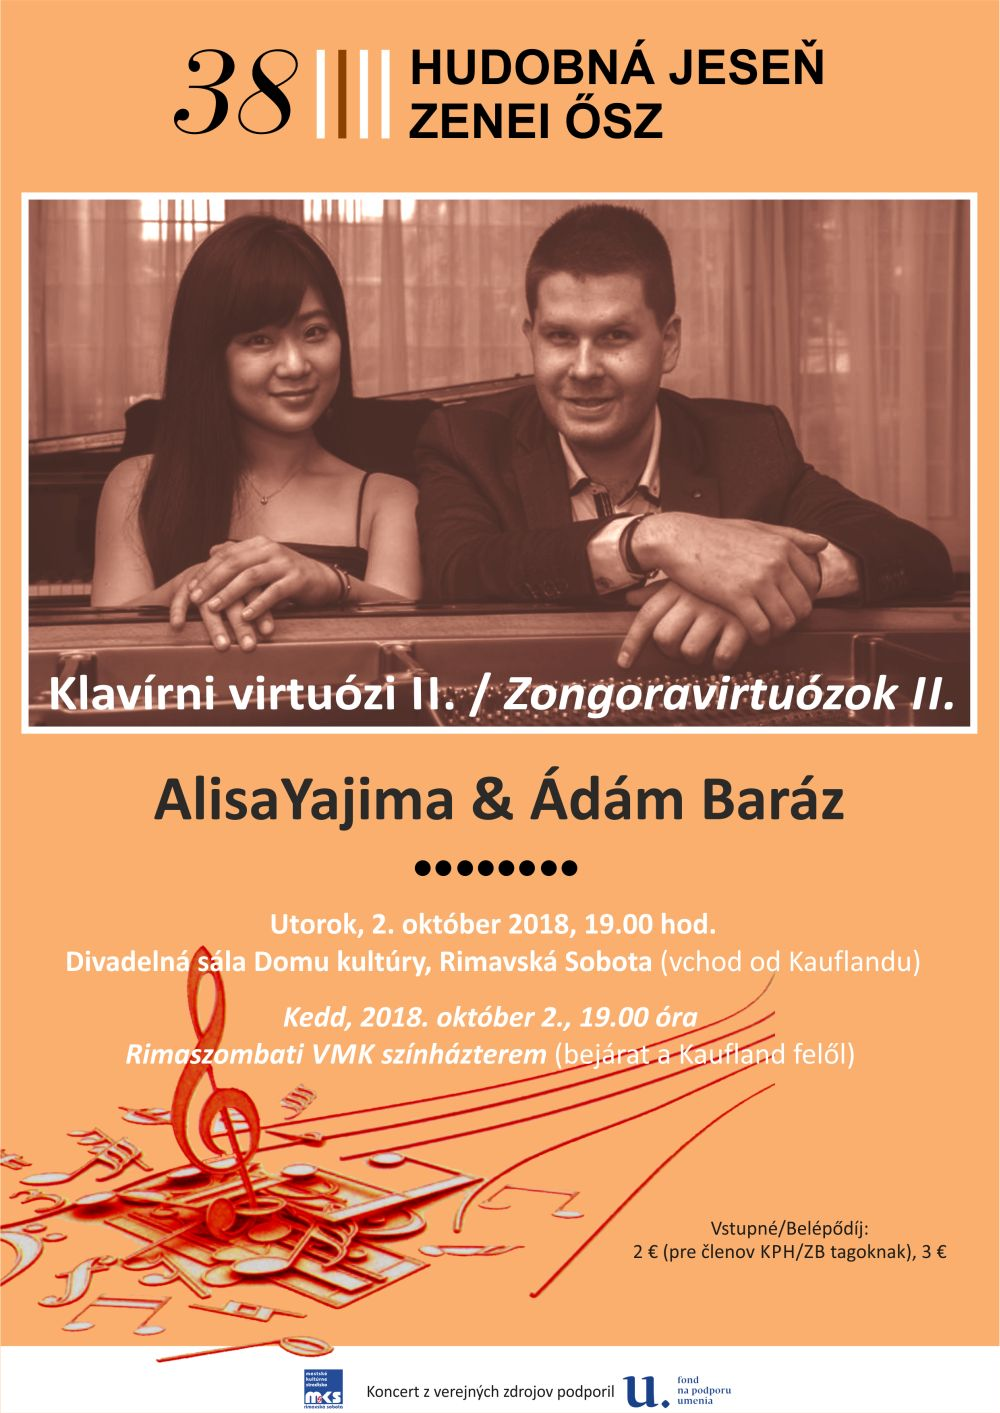 Adam Baraz composer